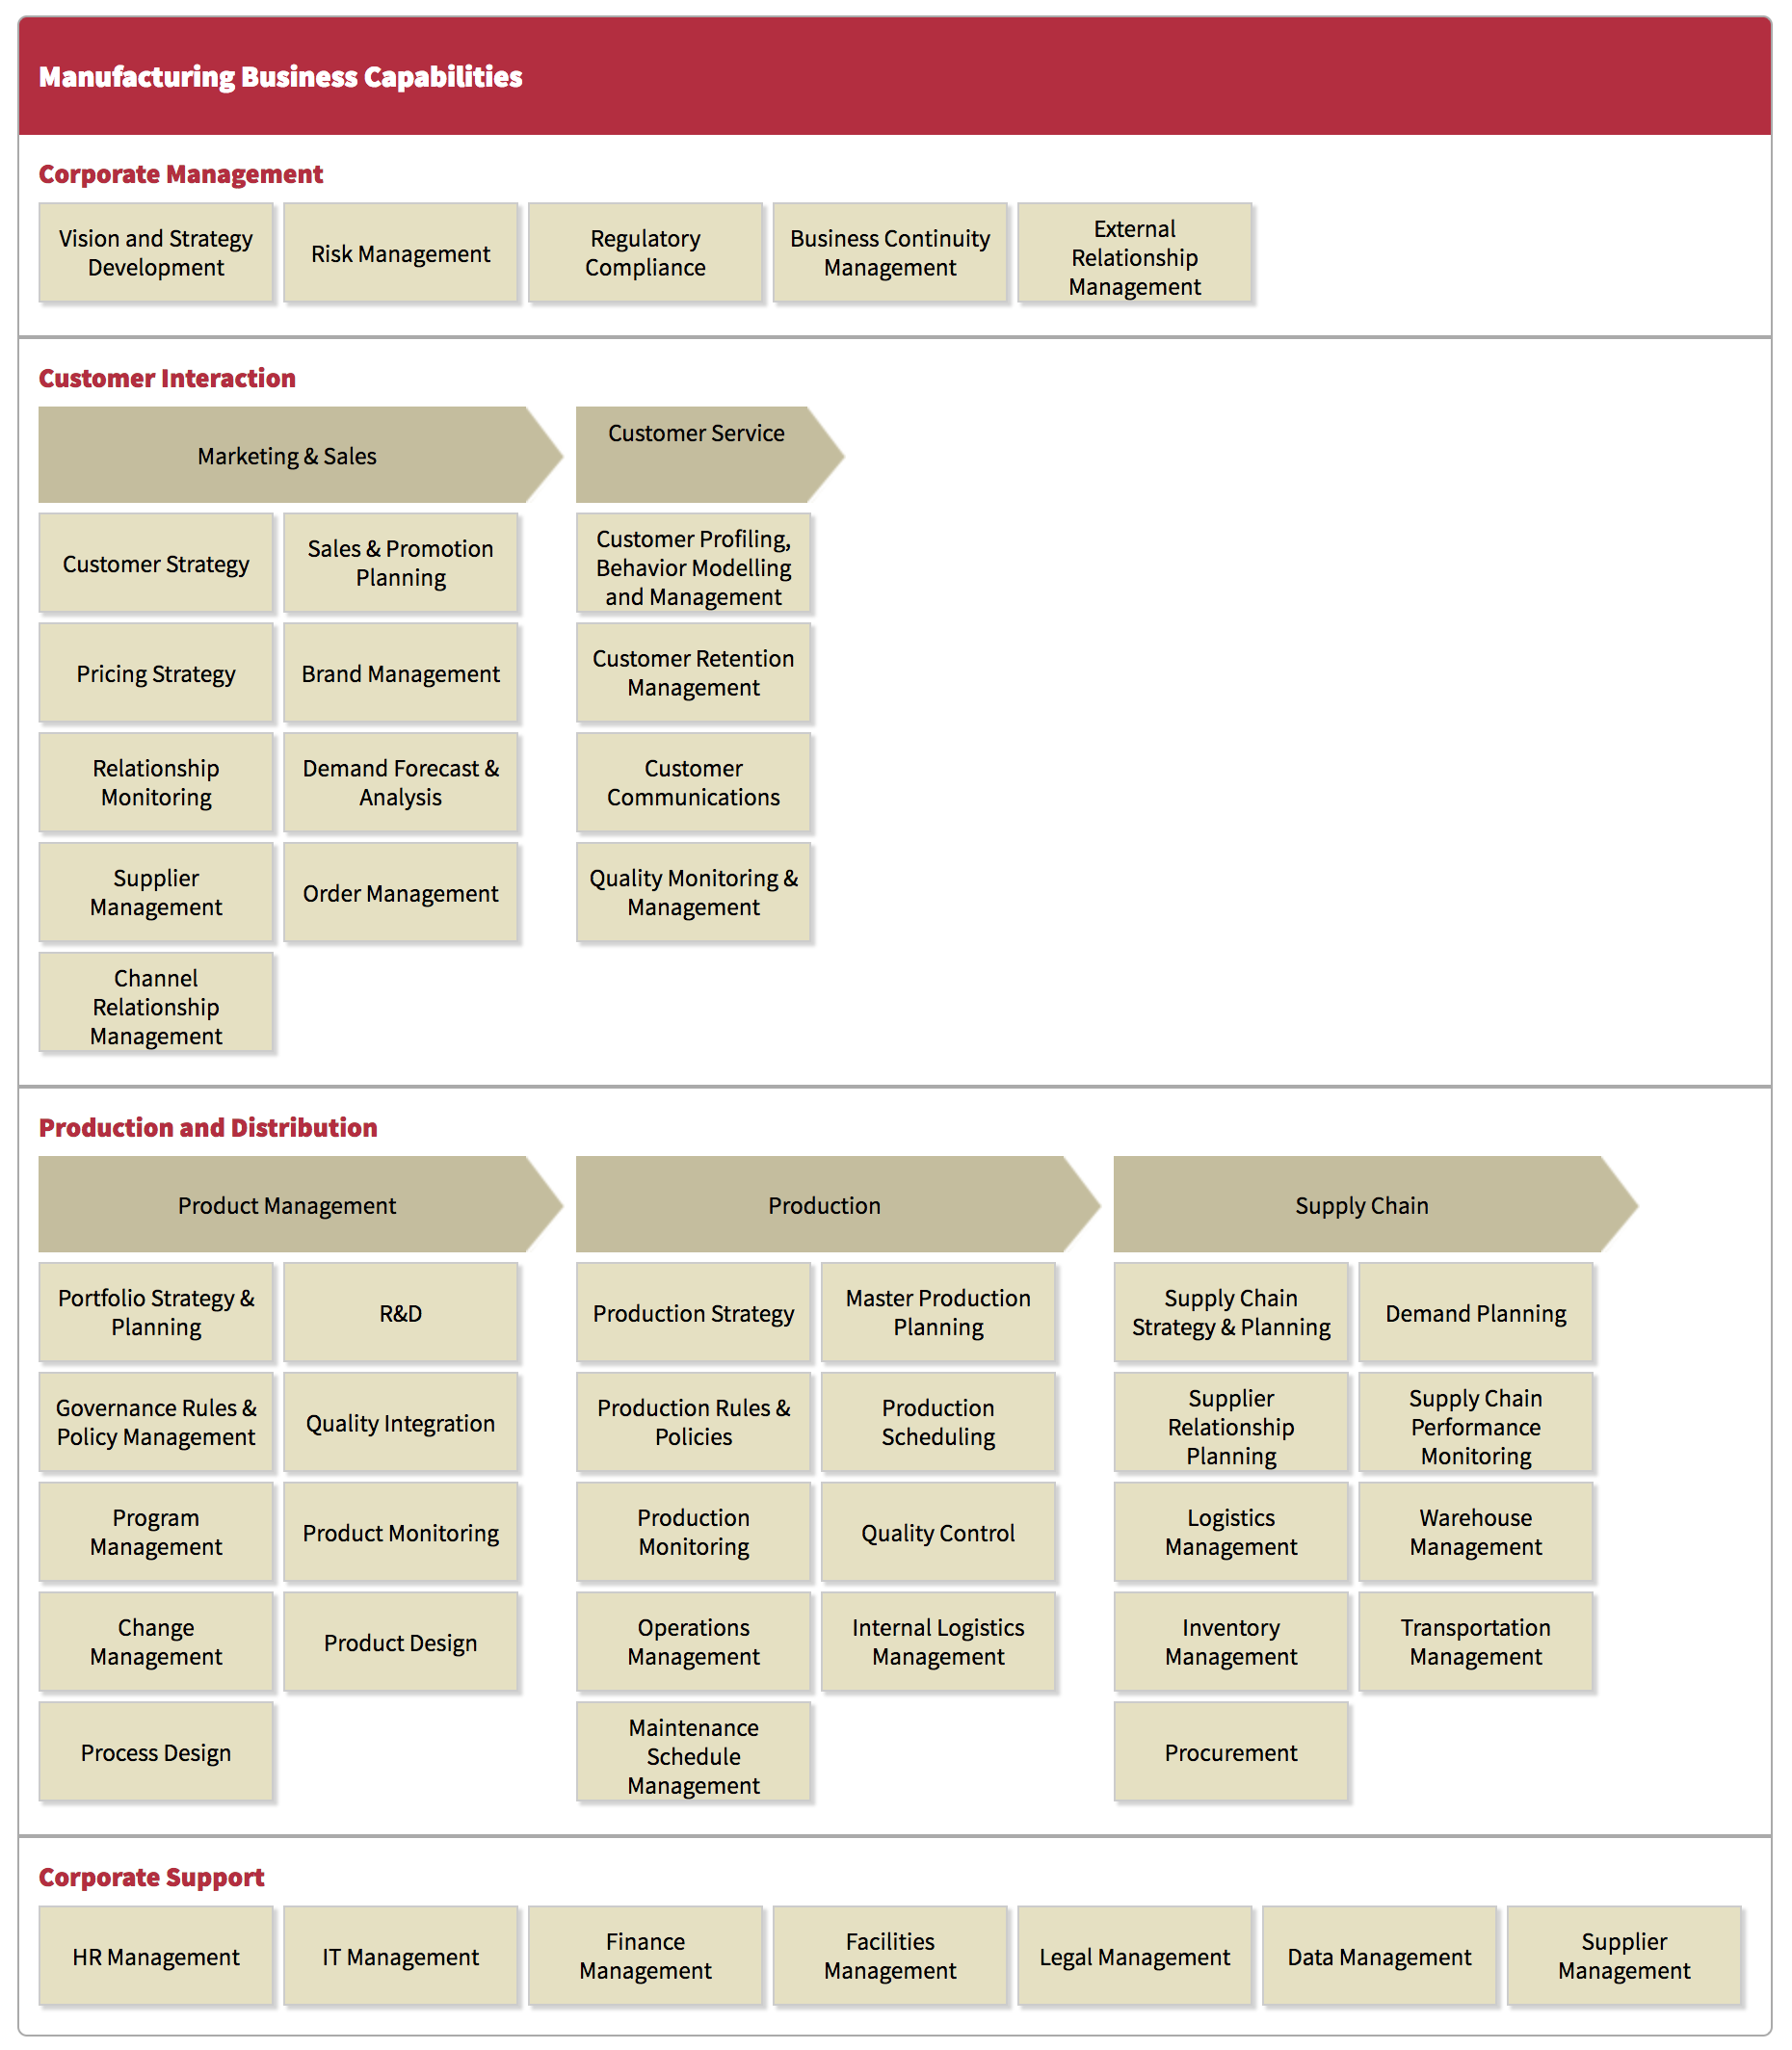 enterprise architecture manufacturing business capability model